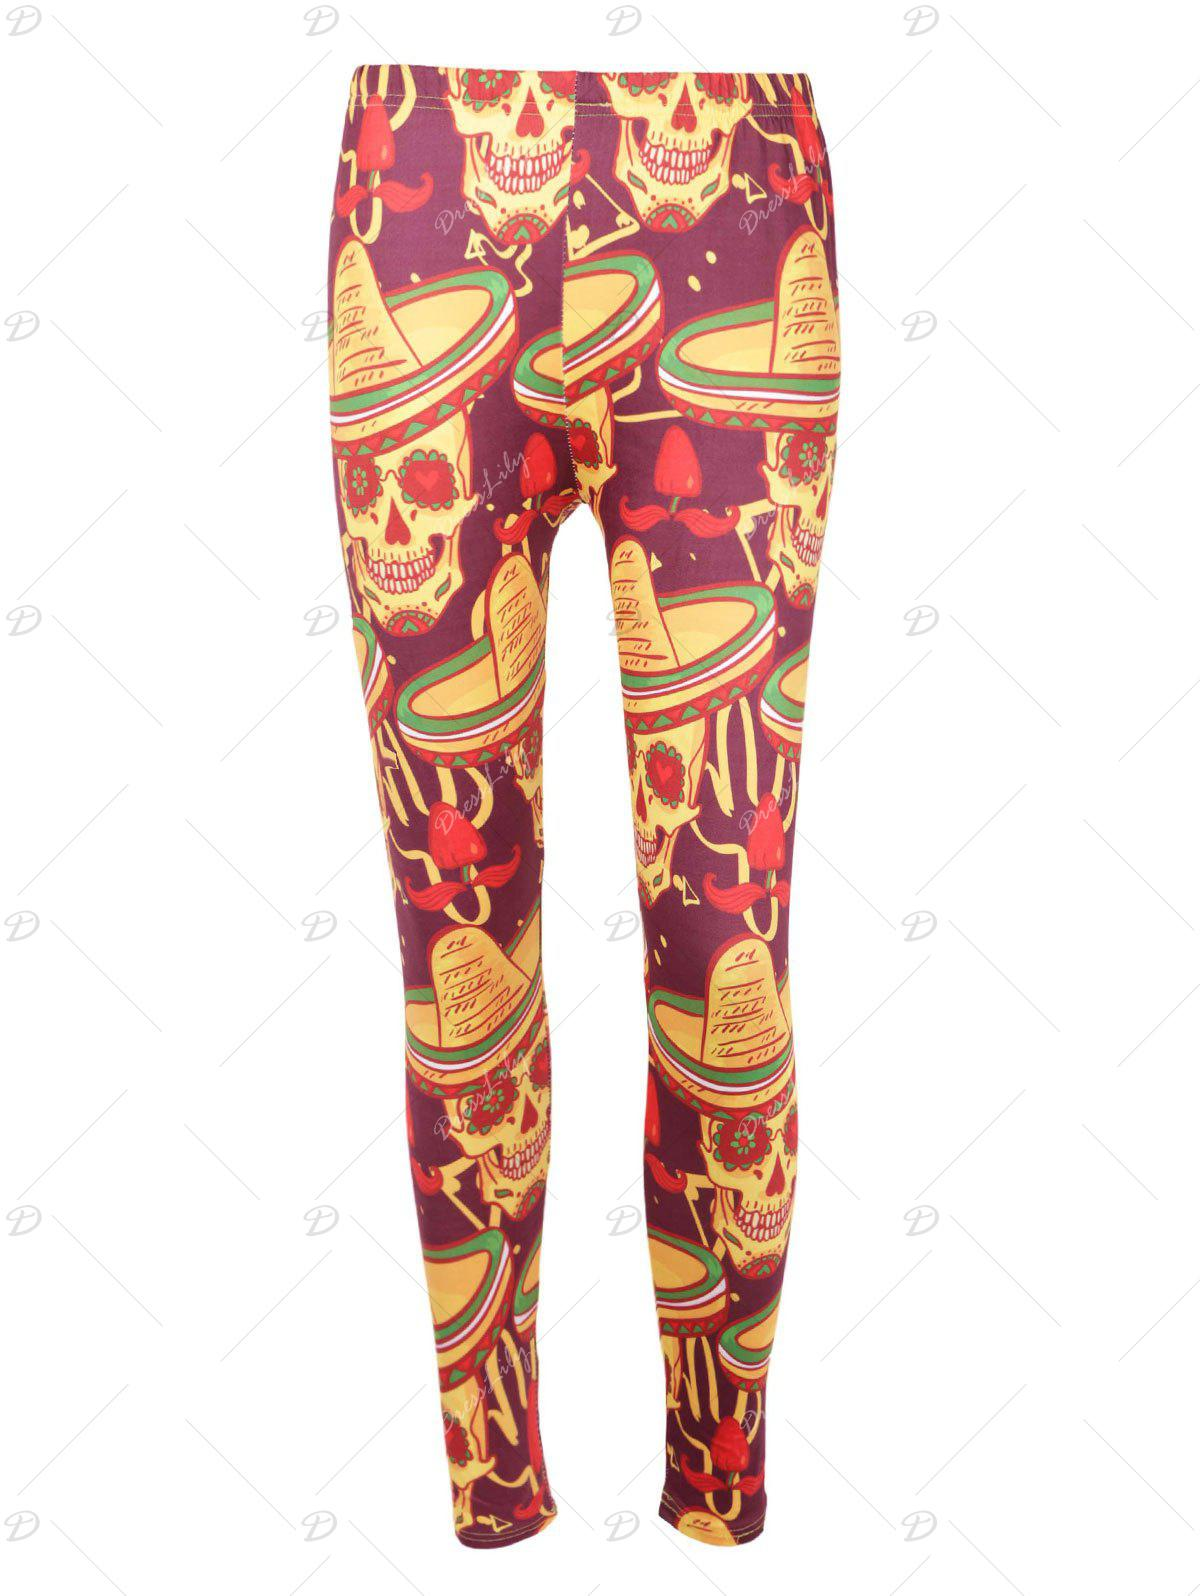 High Waisted Skull Print Halloween Leggings - COLORMIX M